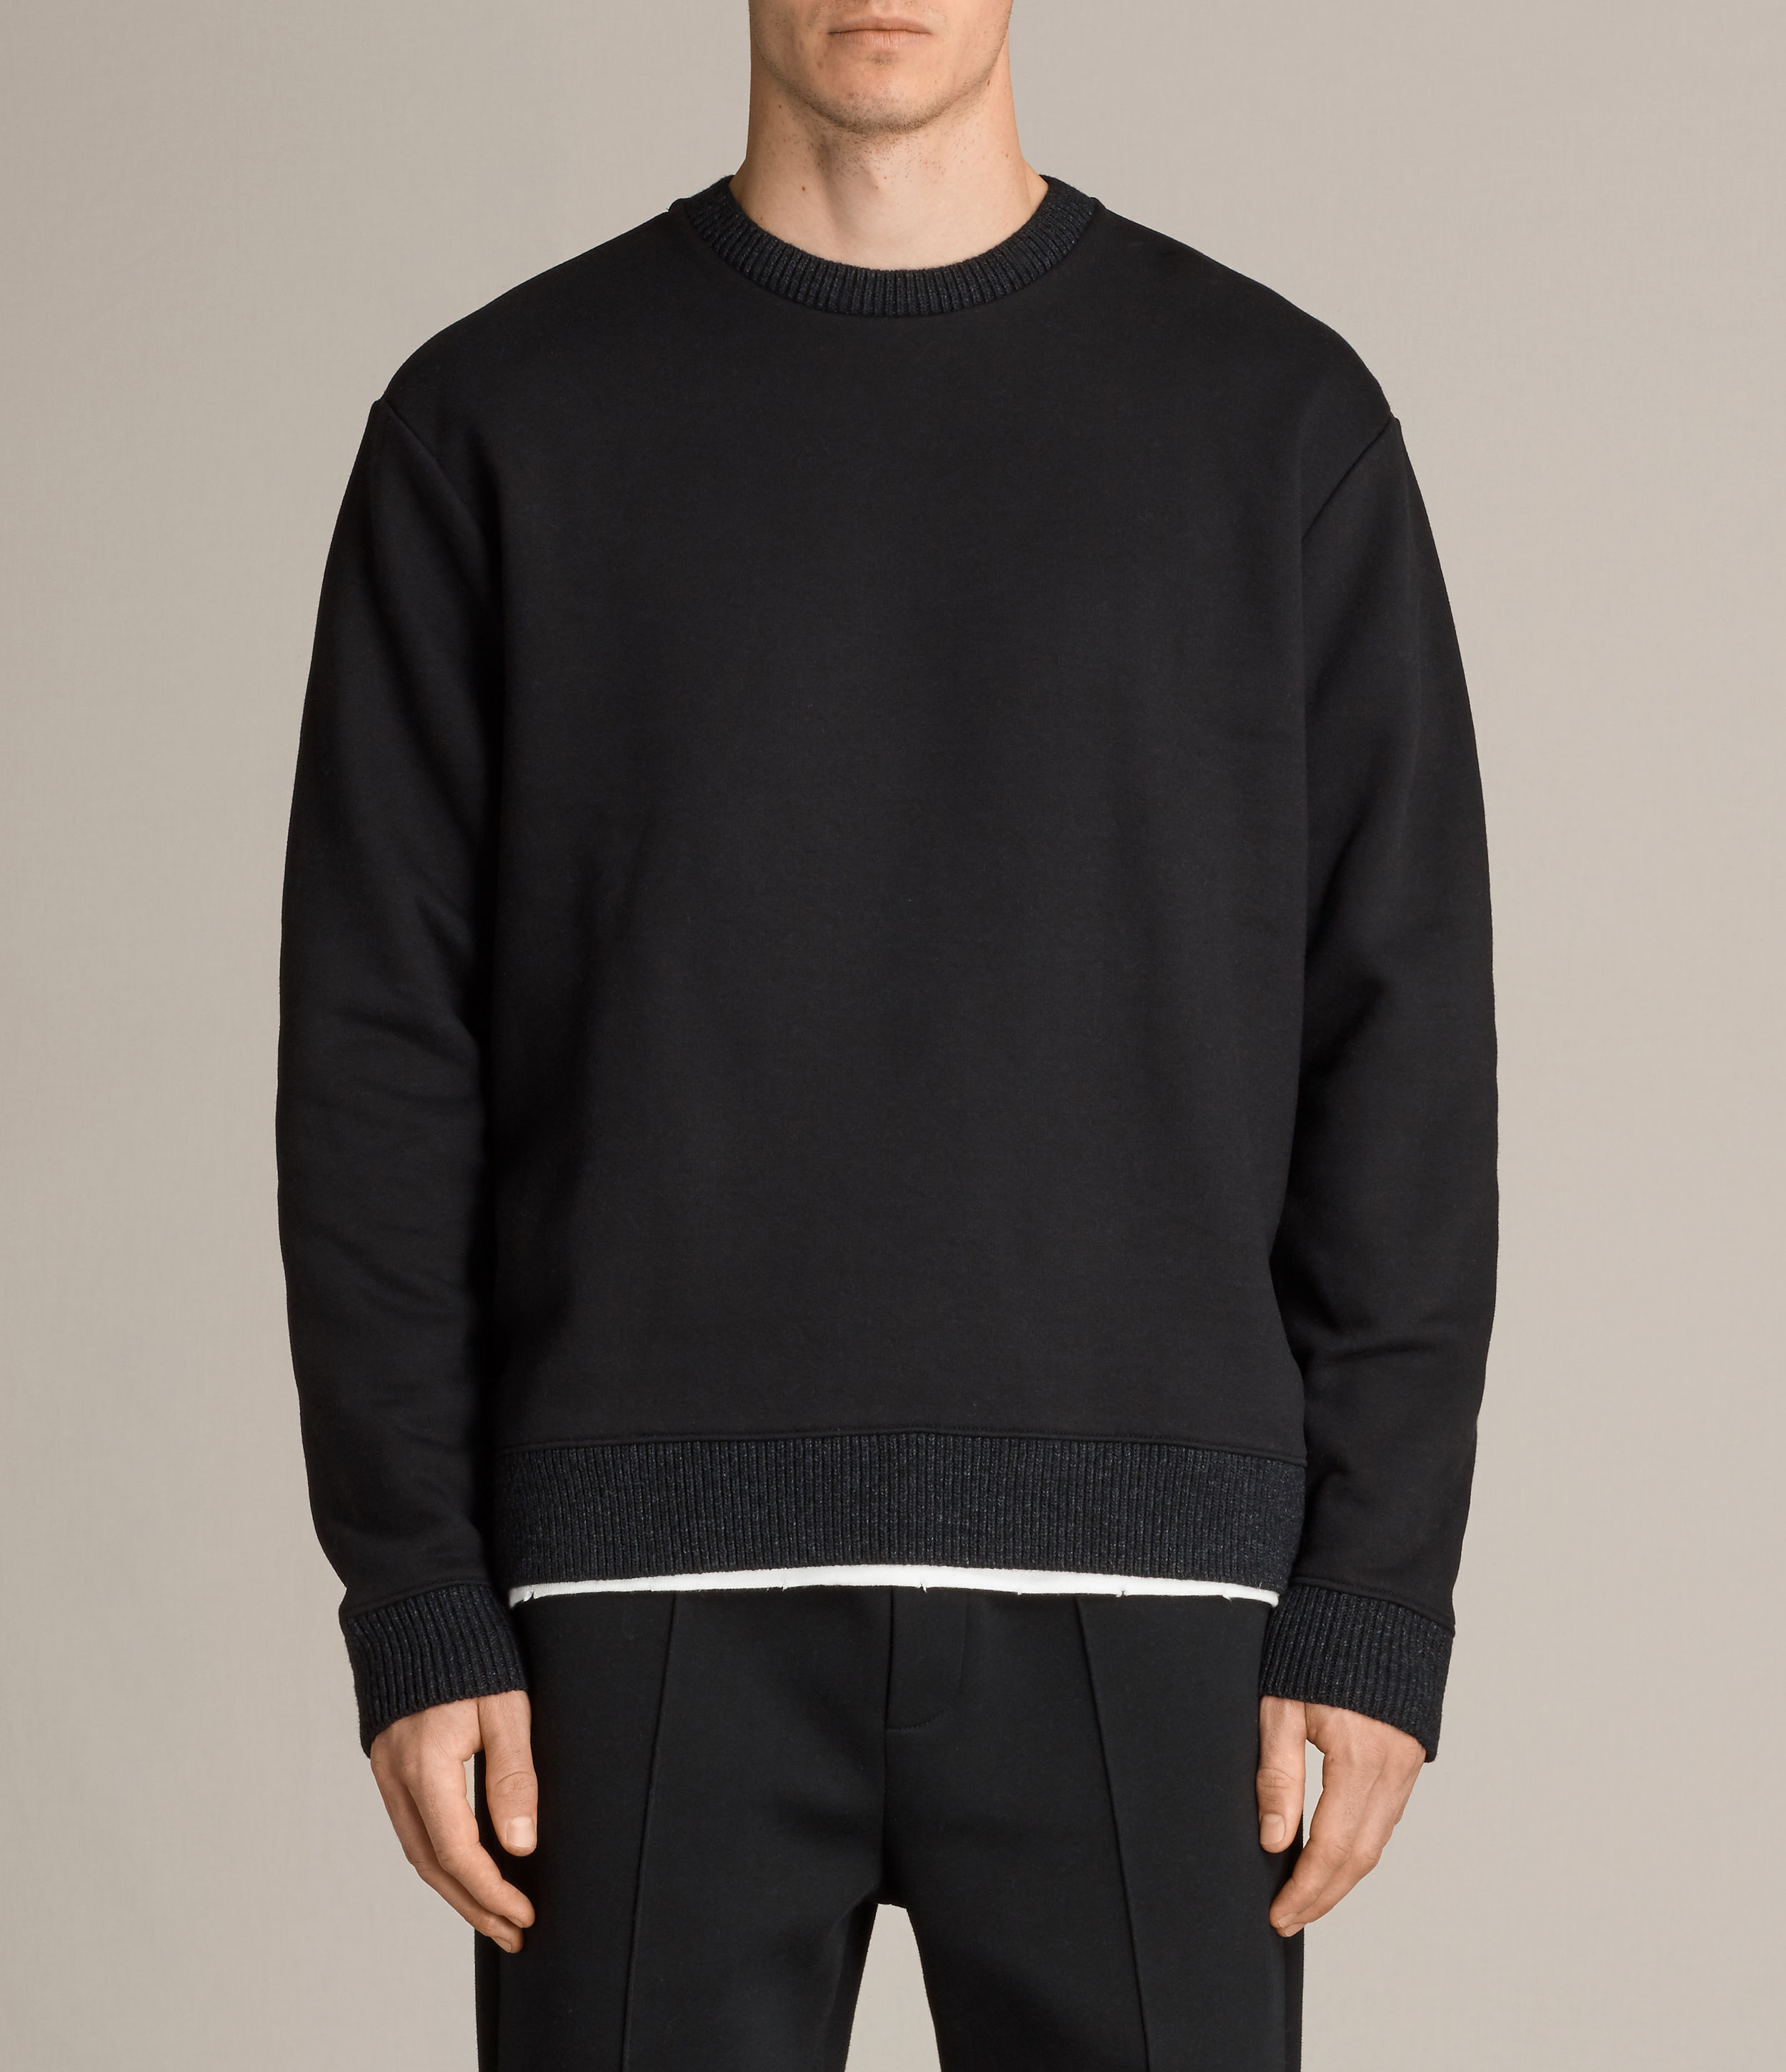 AllSaints Black Elders Crew Sweatshirt